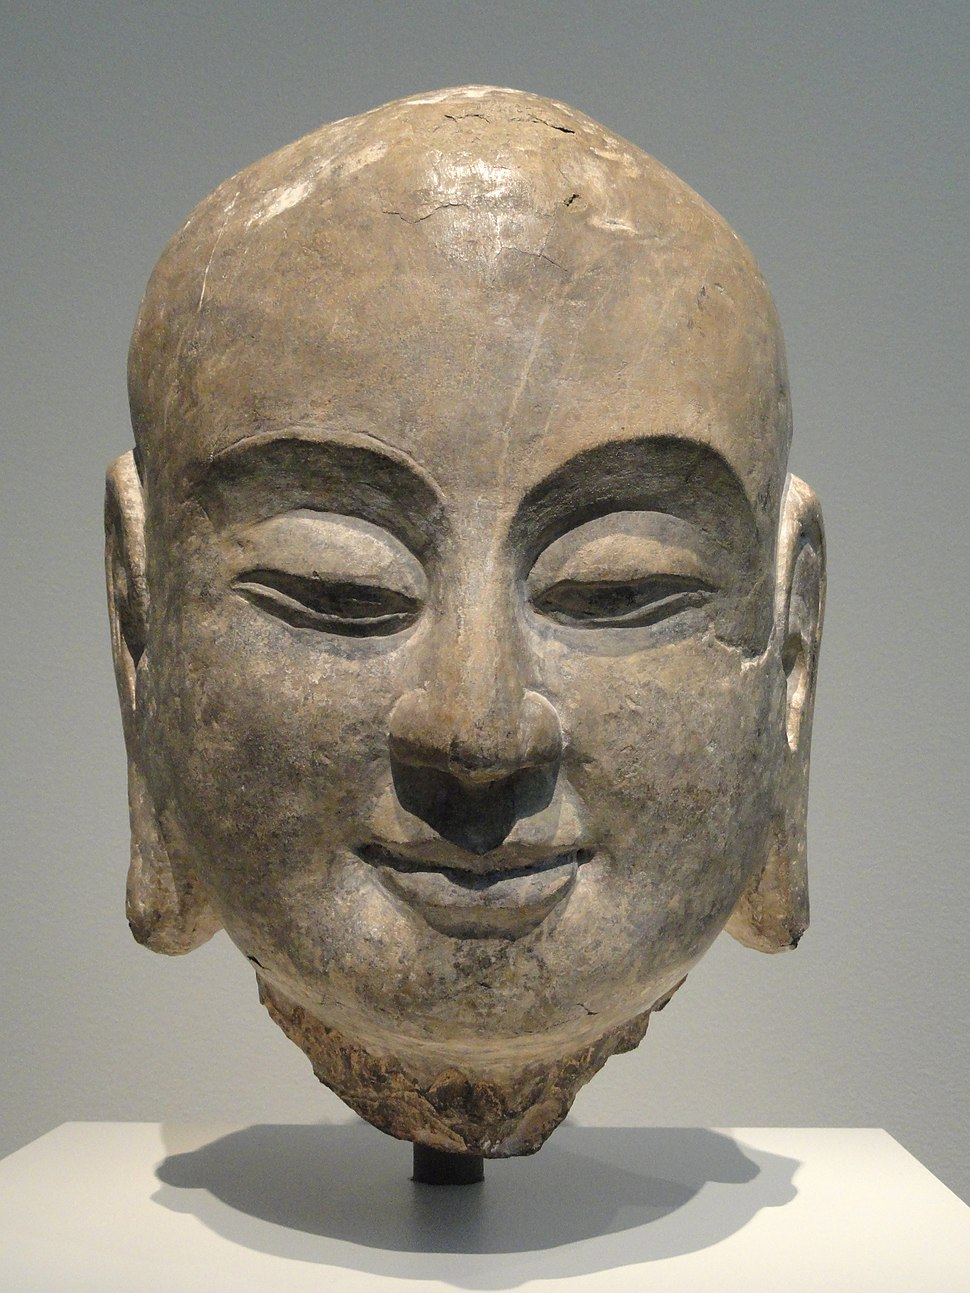 Sculpture of head of smiling monk with East Asian traits, part of limestone sculpture